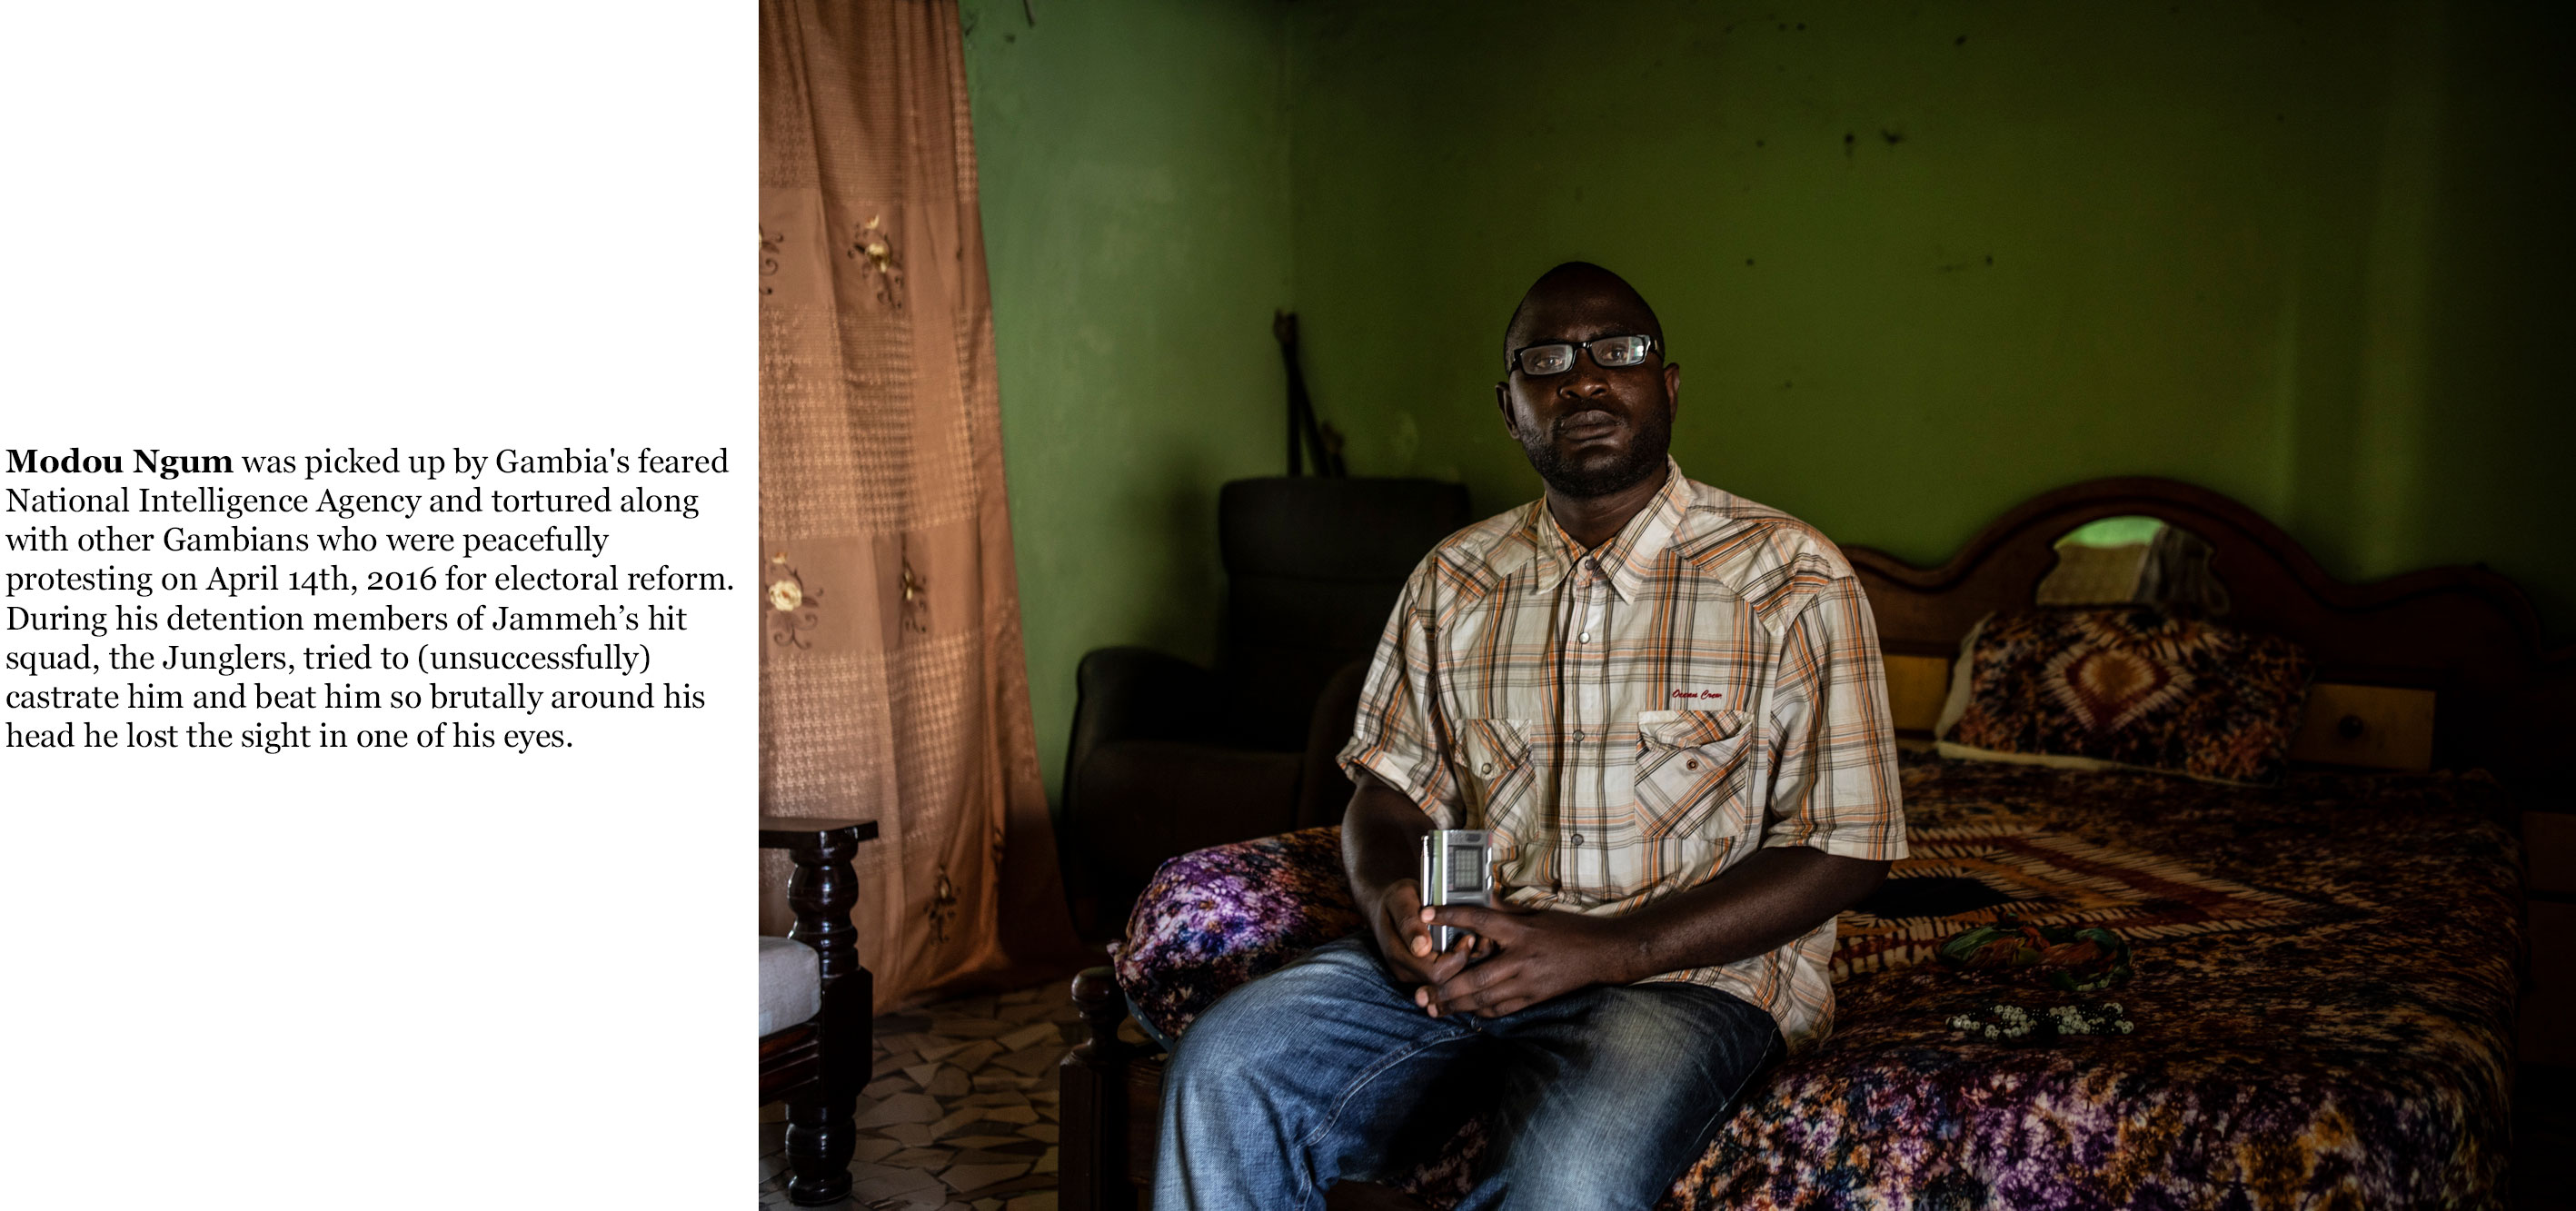 Gambia victims and resisters - Modou-Ngum, tortured after April 14th 2016 protests for electoral reform  ©Jason Florio